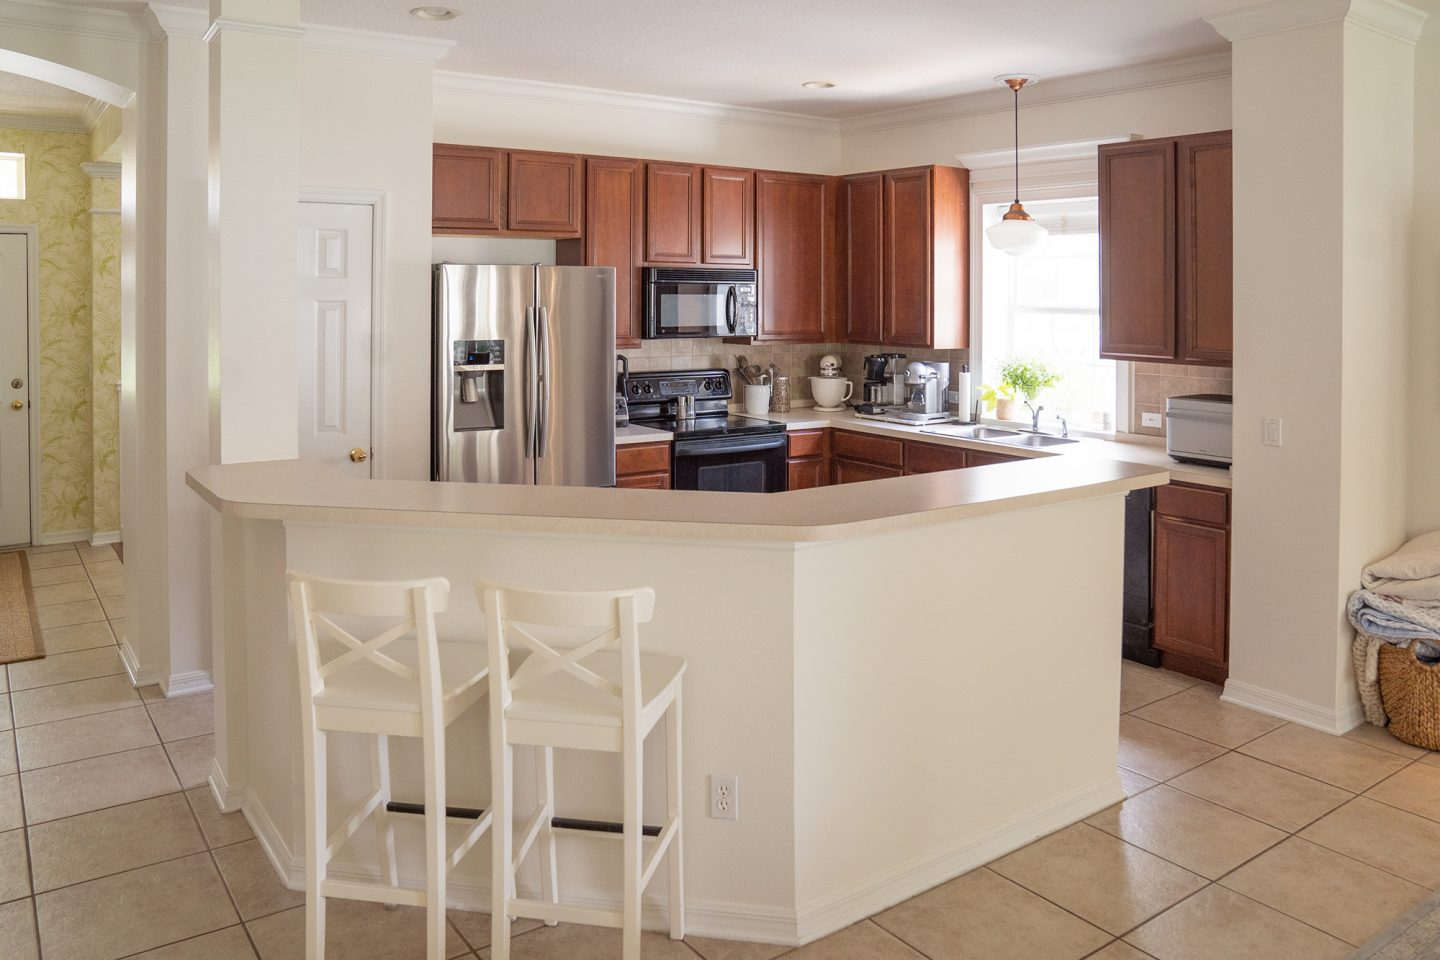 Ashley Brooke's Green Kitchen renovation - before picture